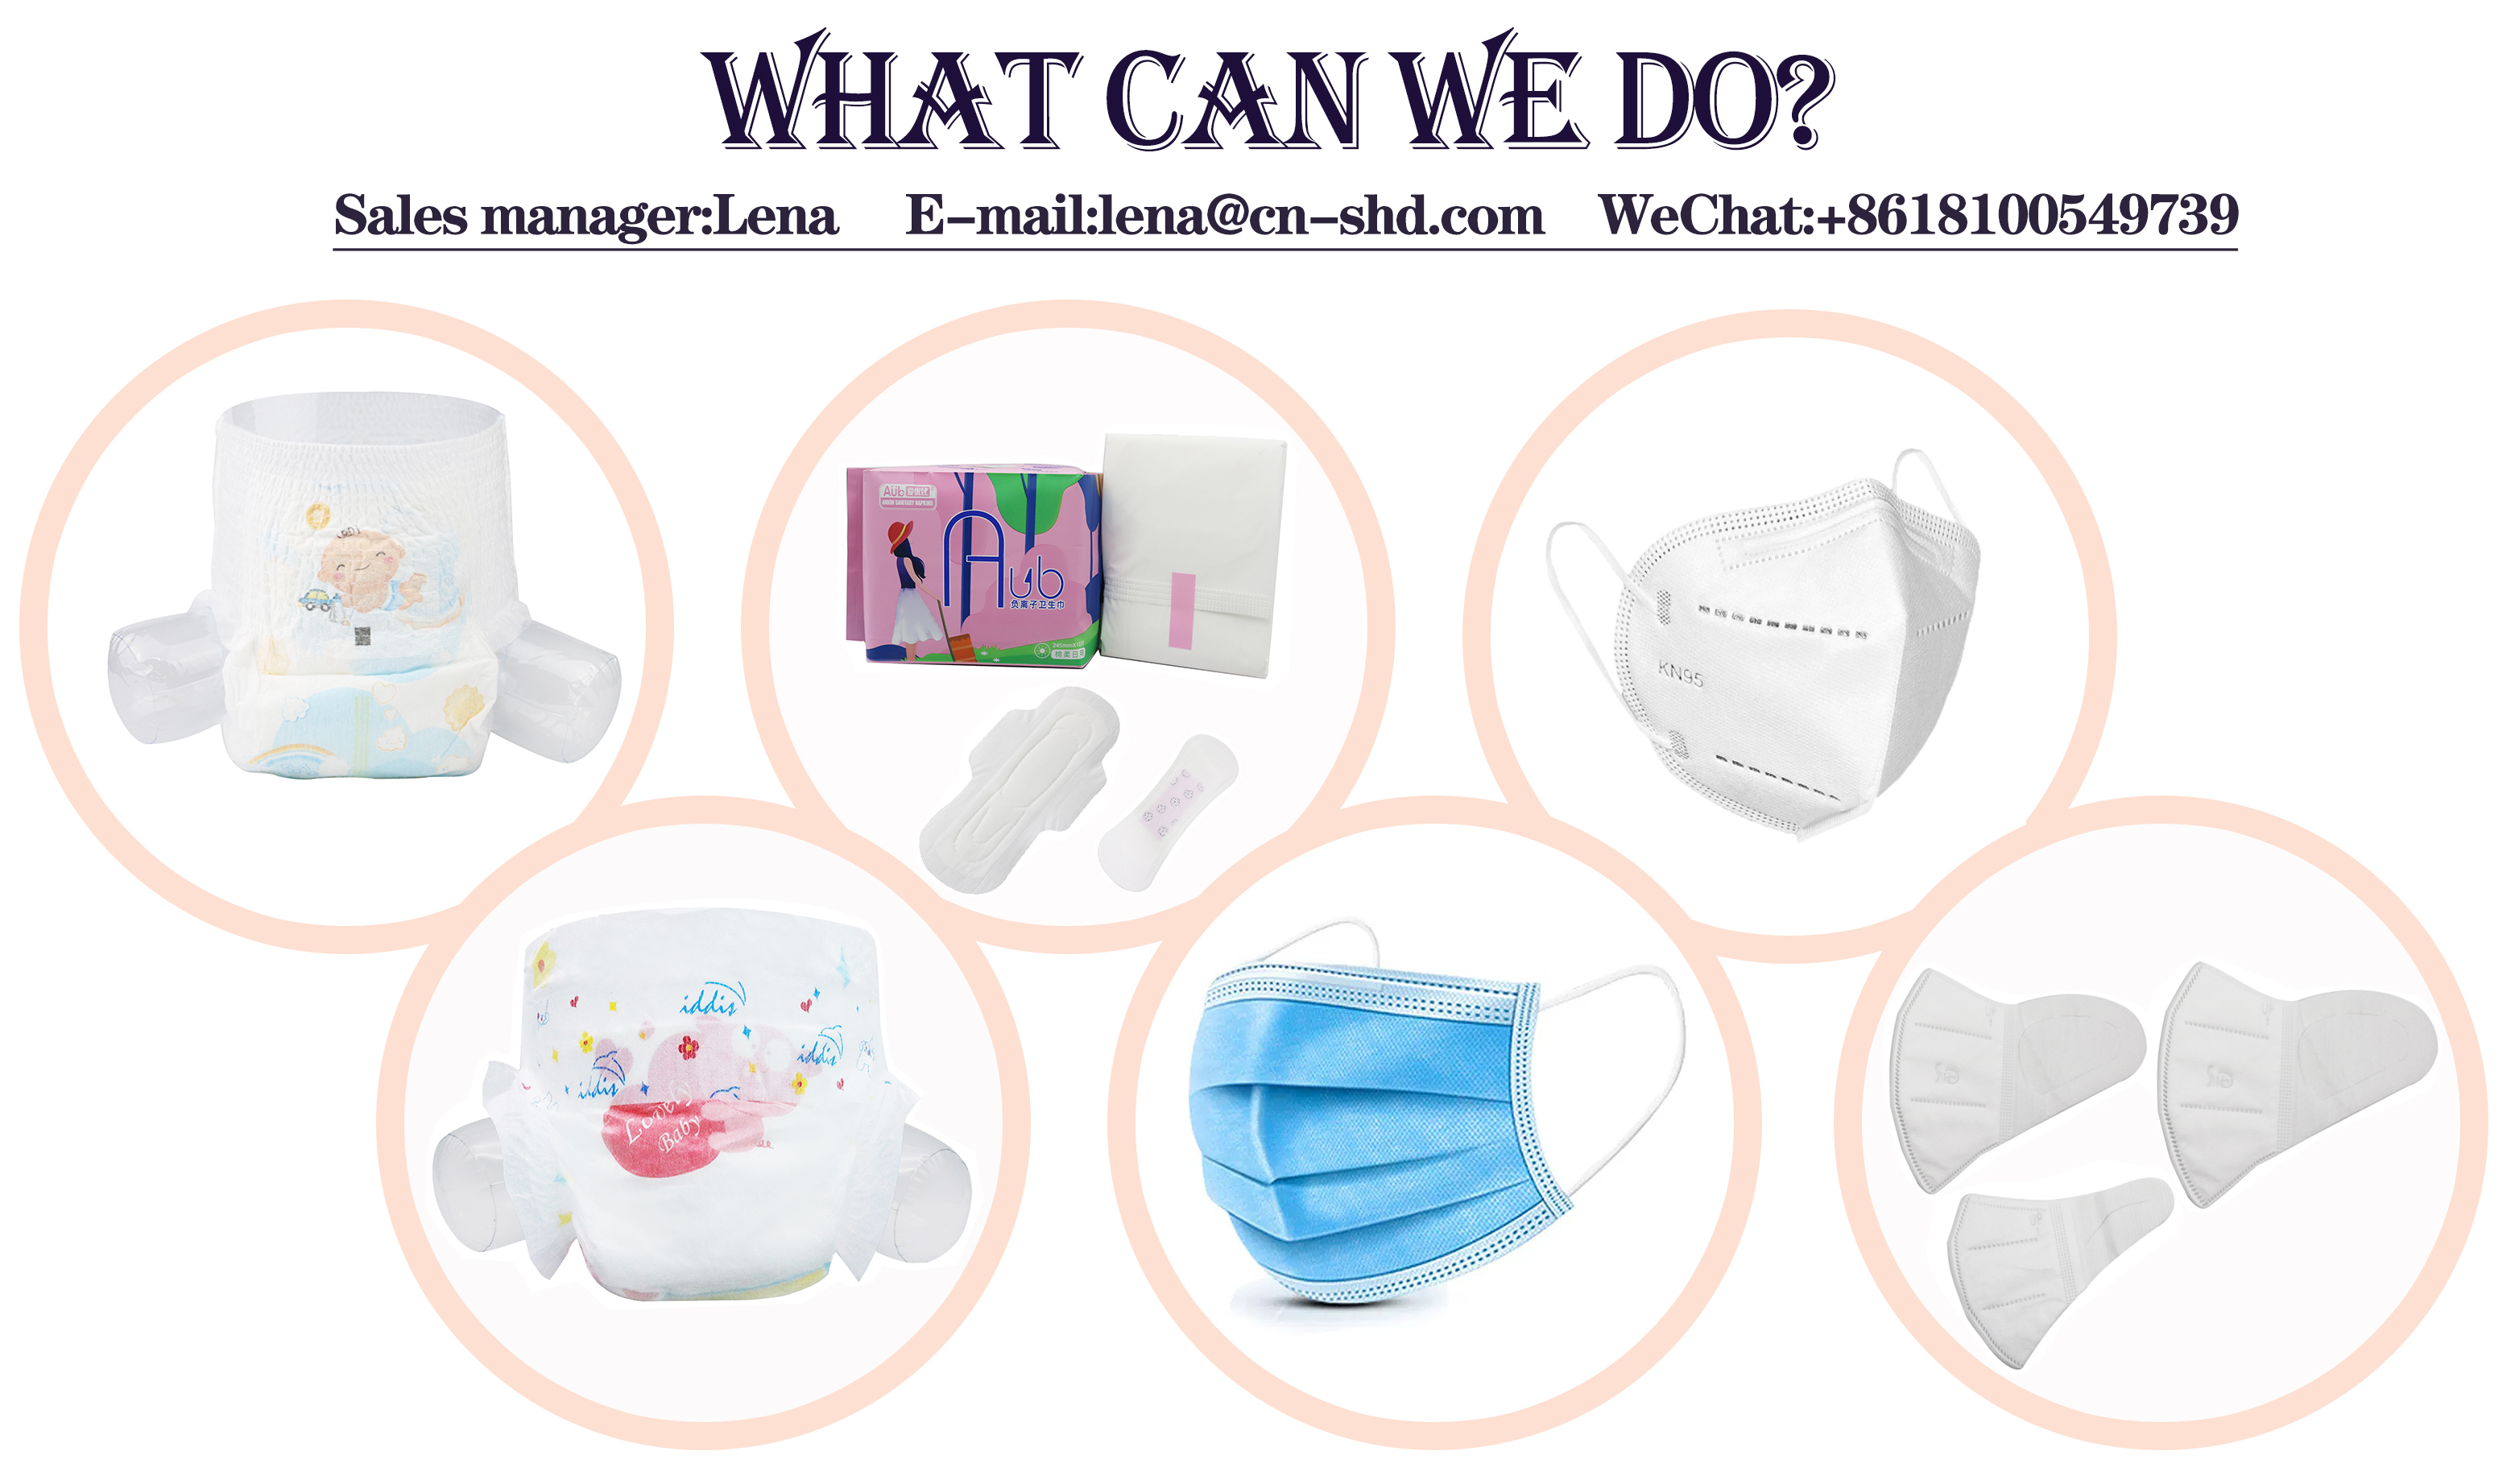 Bamboo fiber sanitary napkins are environmentally friendly and can inhibit bacteria effectively